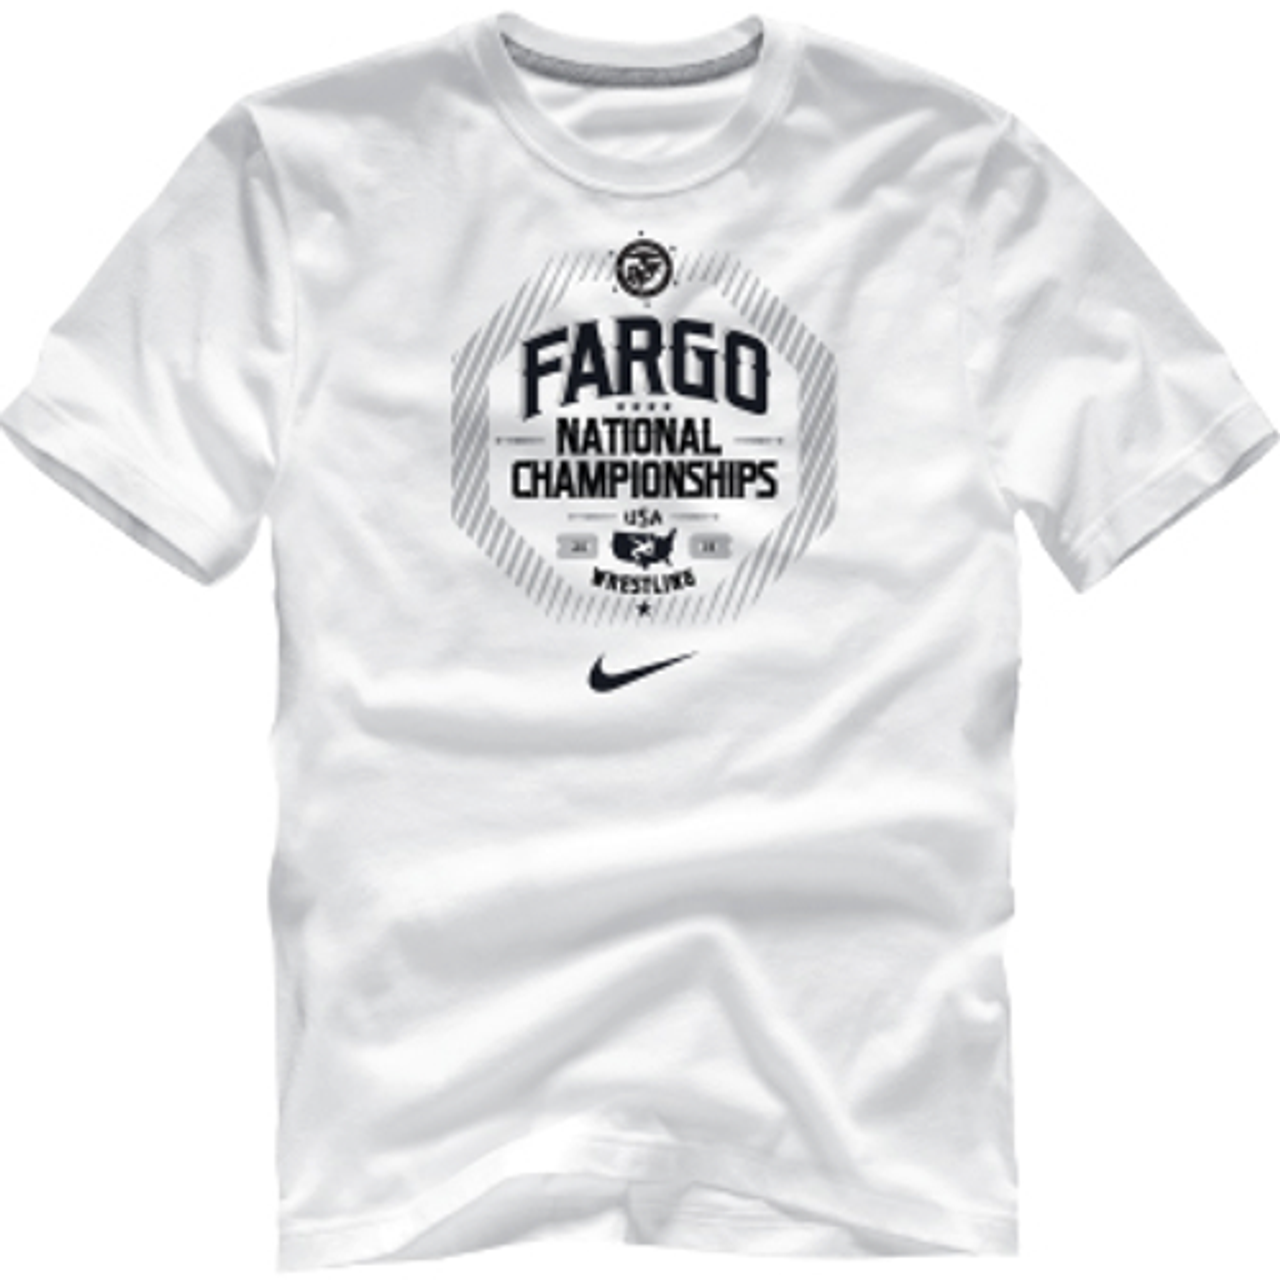 sabio Birmania Albany  Nike Men's Fargo National Championships Cotton Tee - White